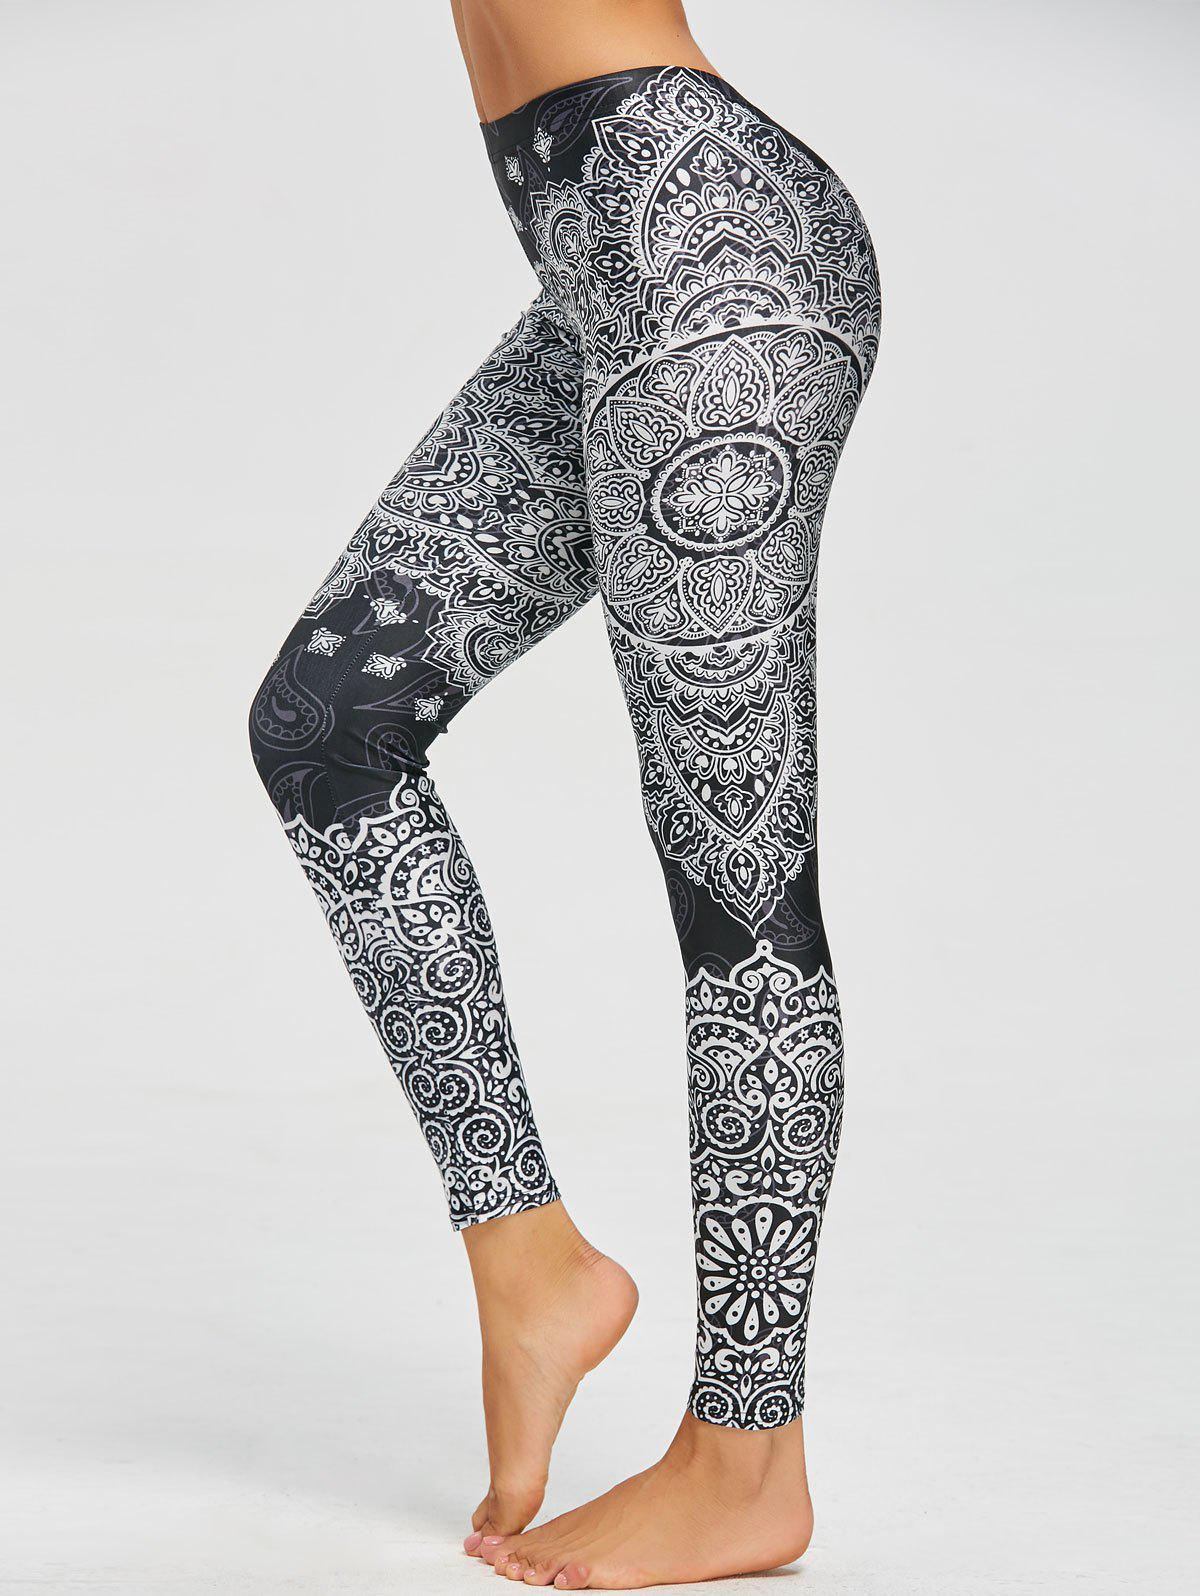 Paisley Bohemian Print LeggingsWOMEN<br><br>Size: M; Color: BLACK; Style: Fashion; Material: Polyester,Spandex; Waist Type: High; Pattern Type: Others; Weight: 0.2300kg; Package Contents: 1 x Leggings;